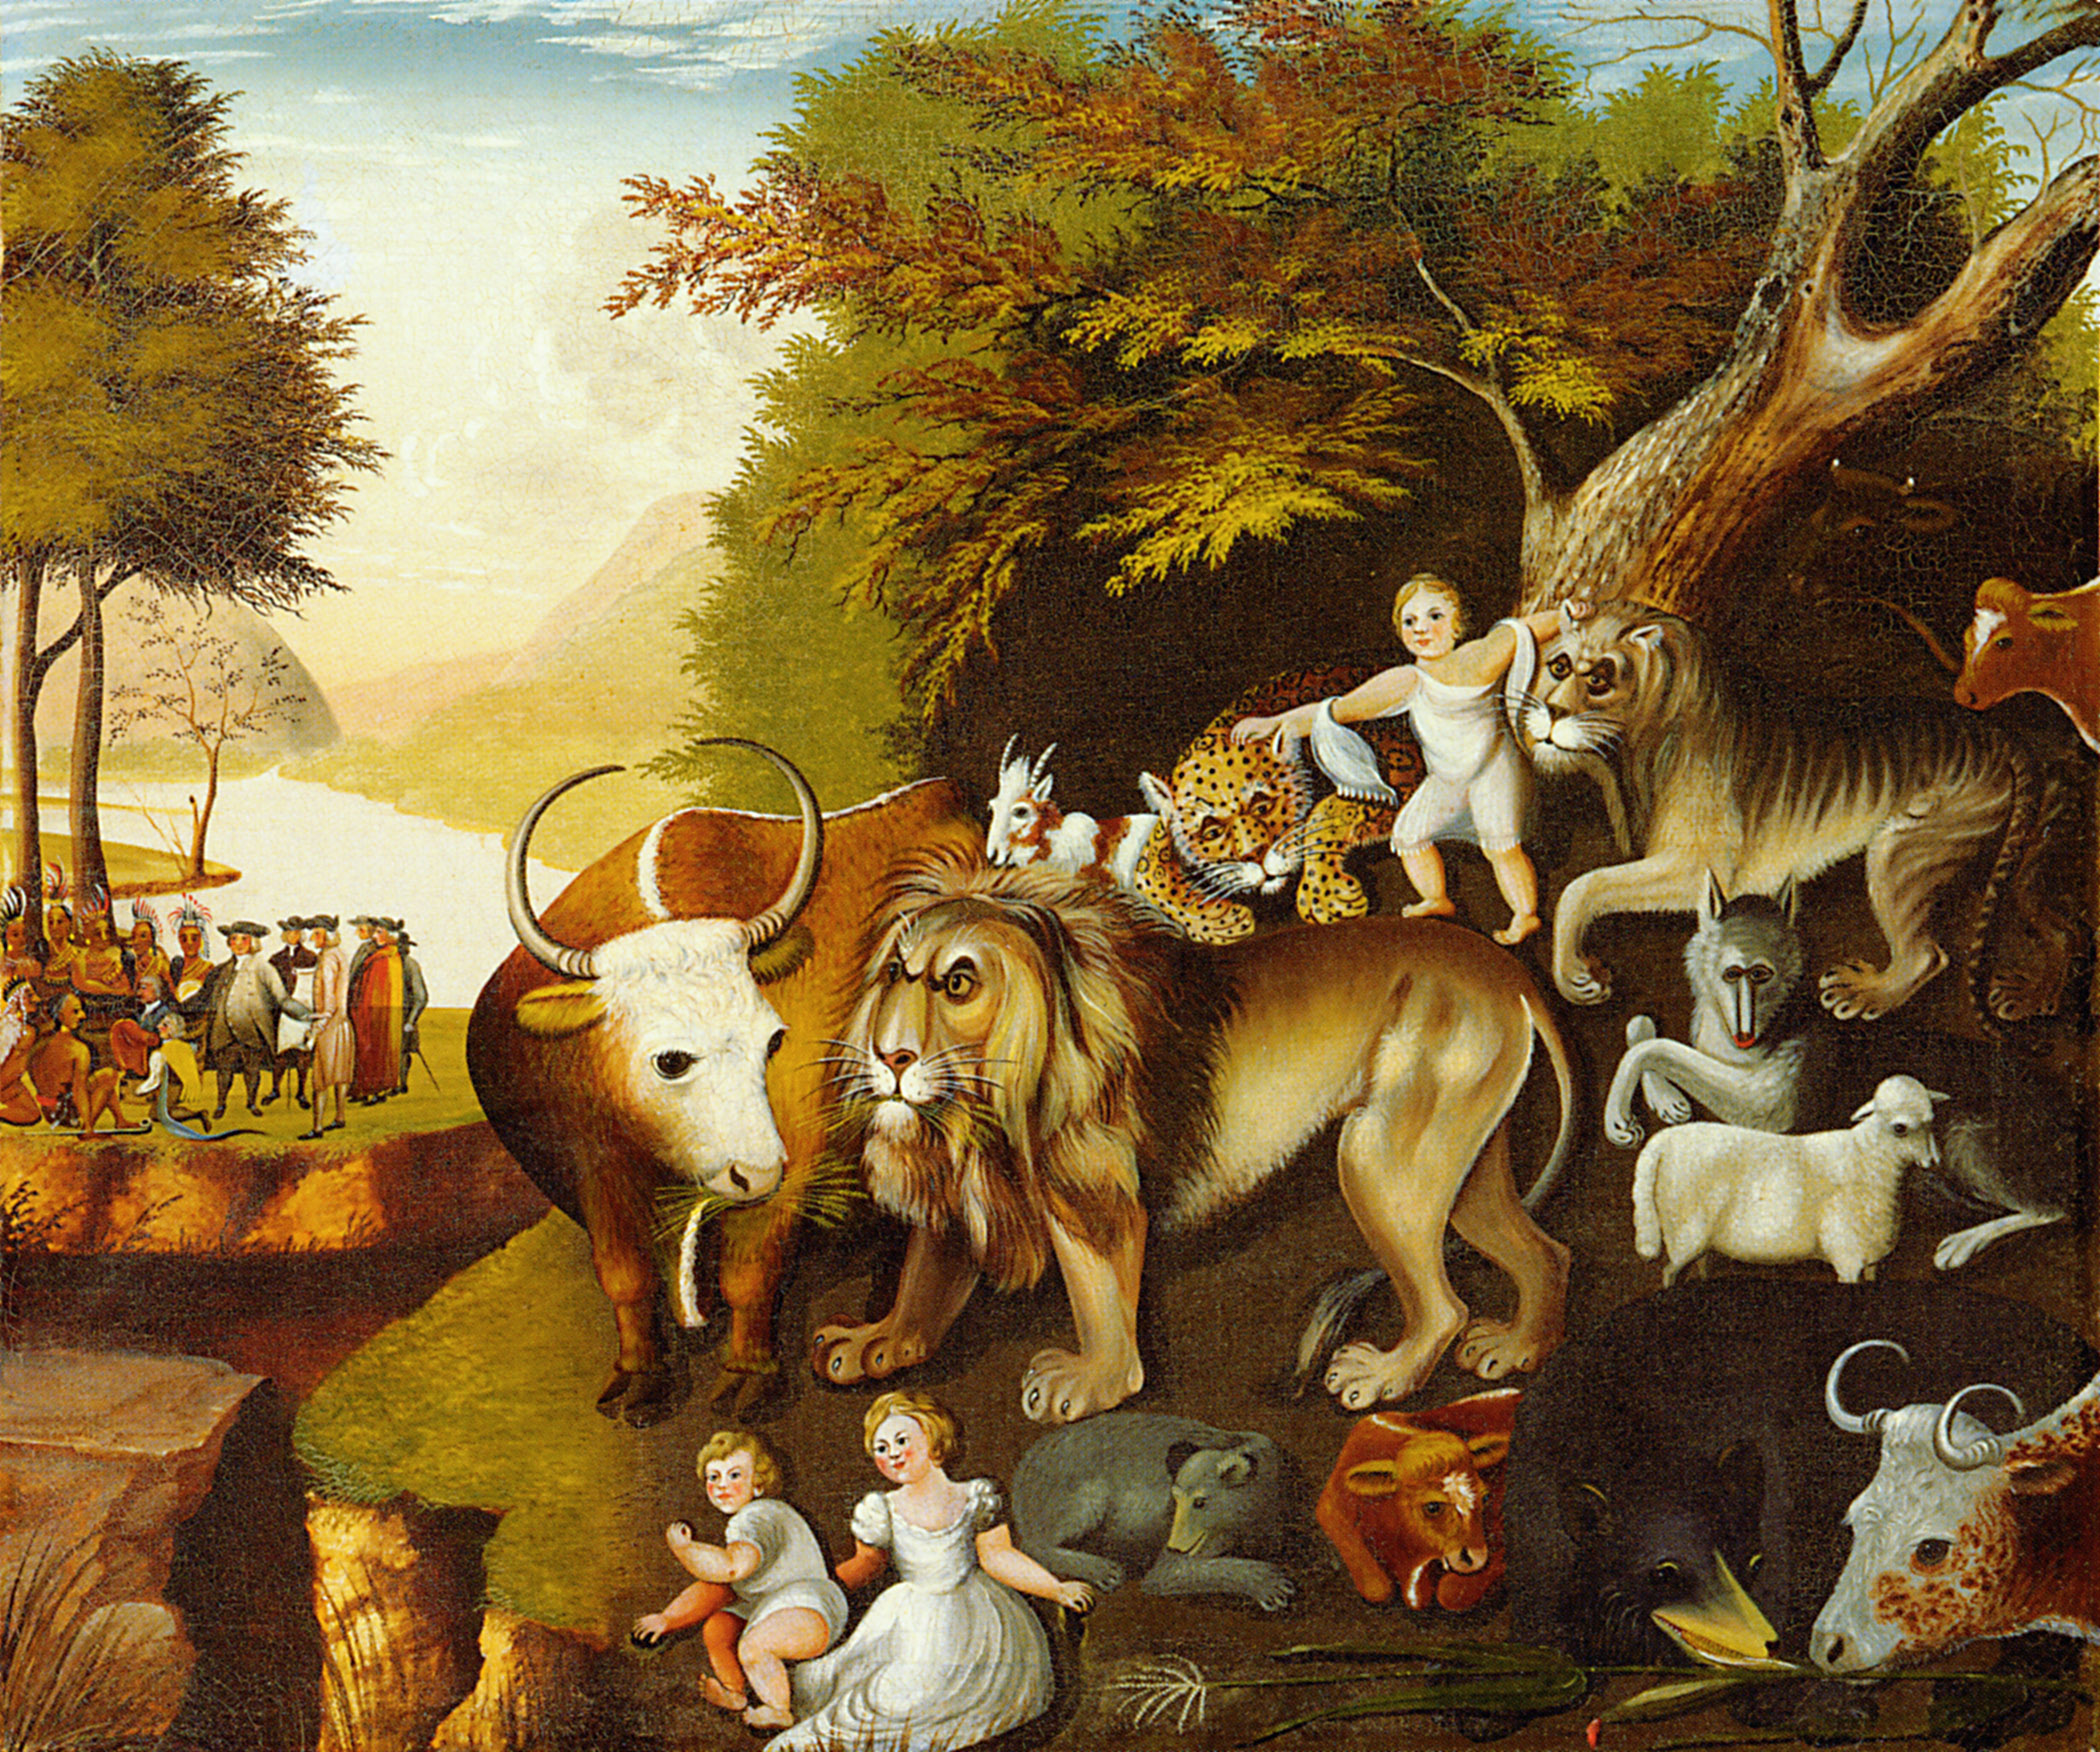 Peaceable Kingdom, oil on canvas, 75 x 89.5 cm